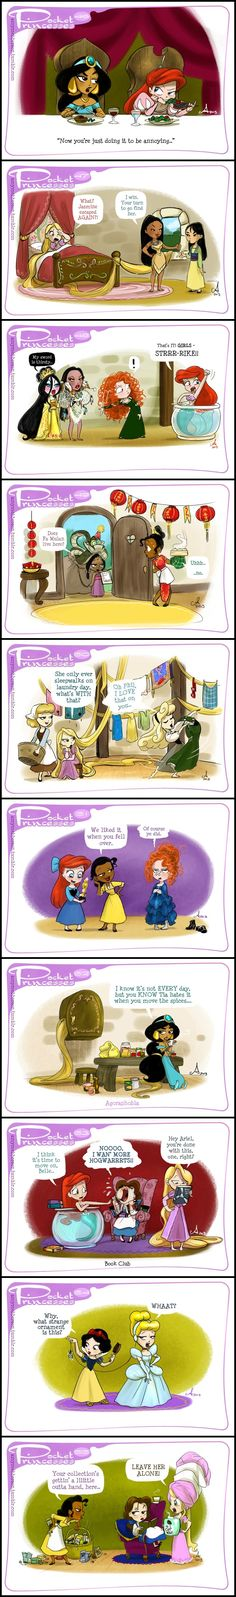 38 Ideas Funny Disney Comics Pocket Princesses Rapunzel For 2019 Disney Pixar, Walt Disney, Disney Amor, Cute Disney, Disney Girls, Disney And Dreamworks, Disney Magic, Funny Disney, Disney Princes